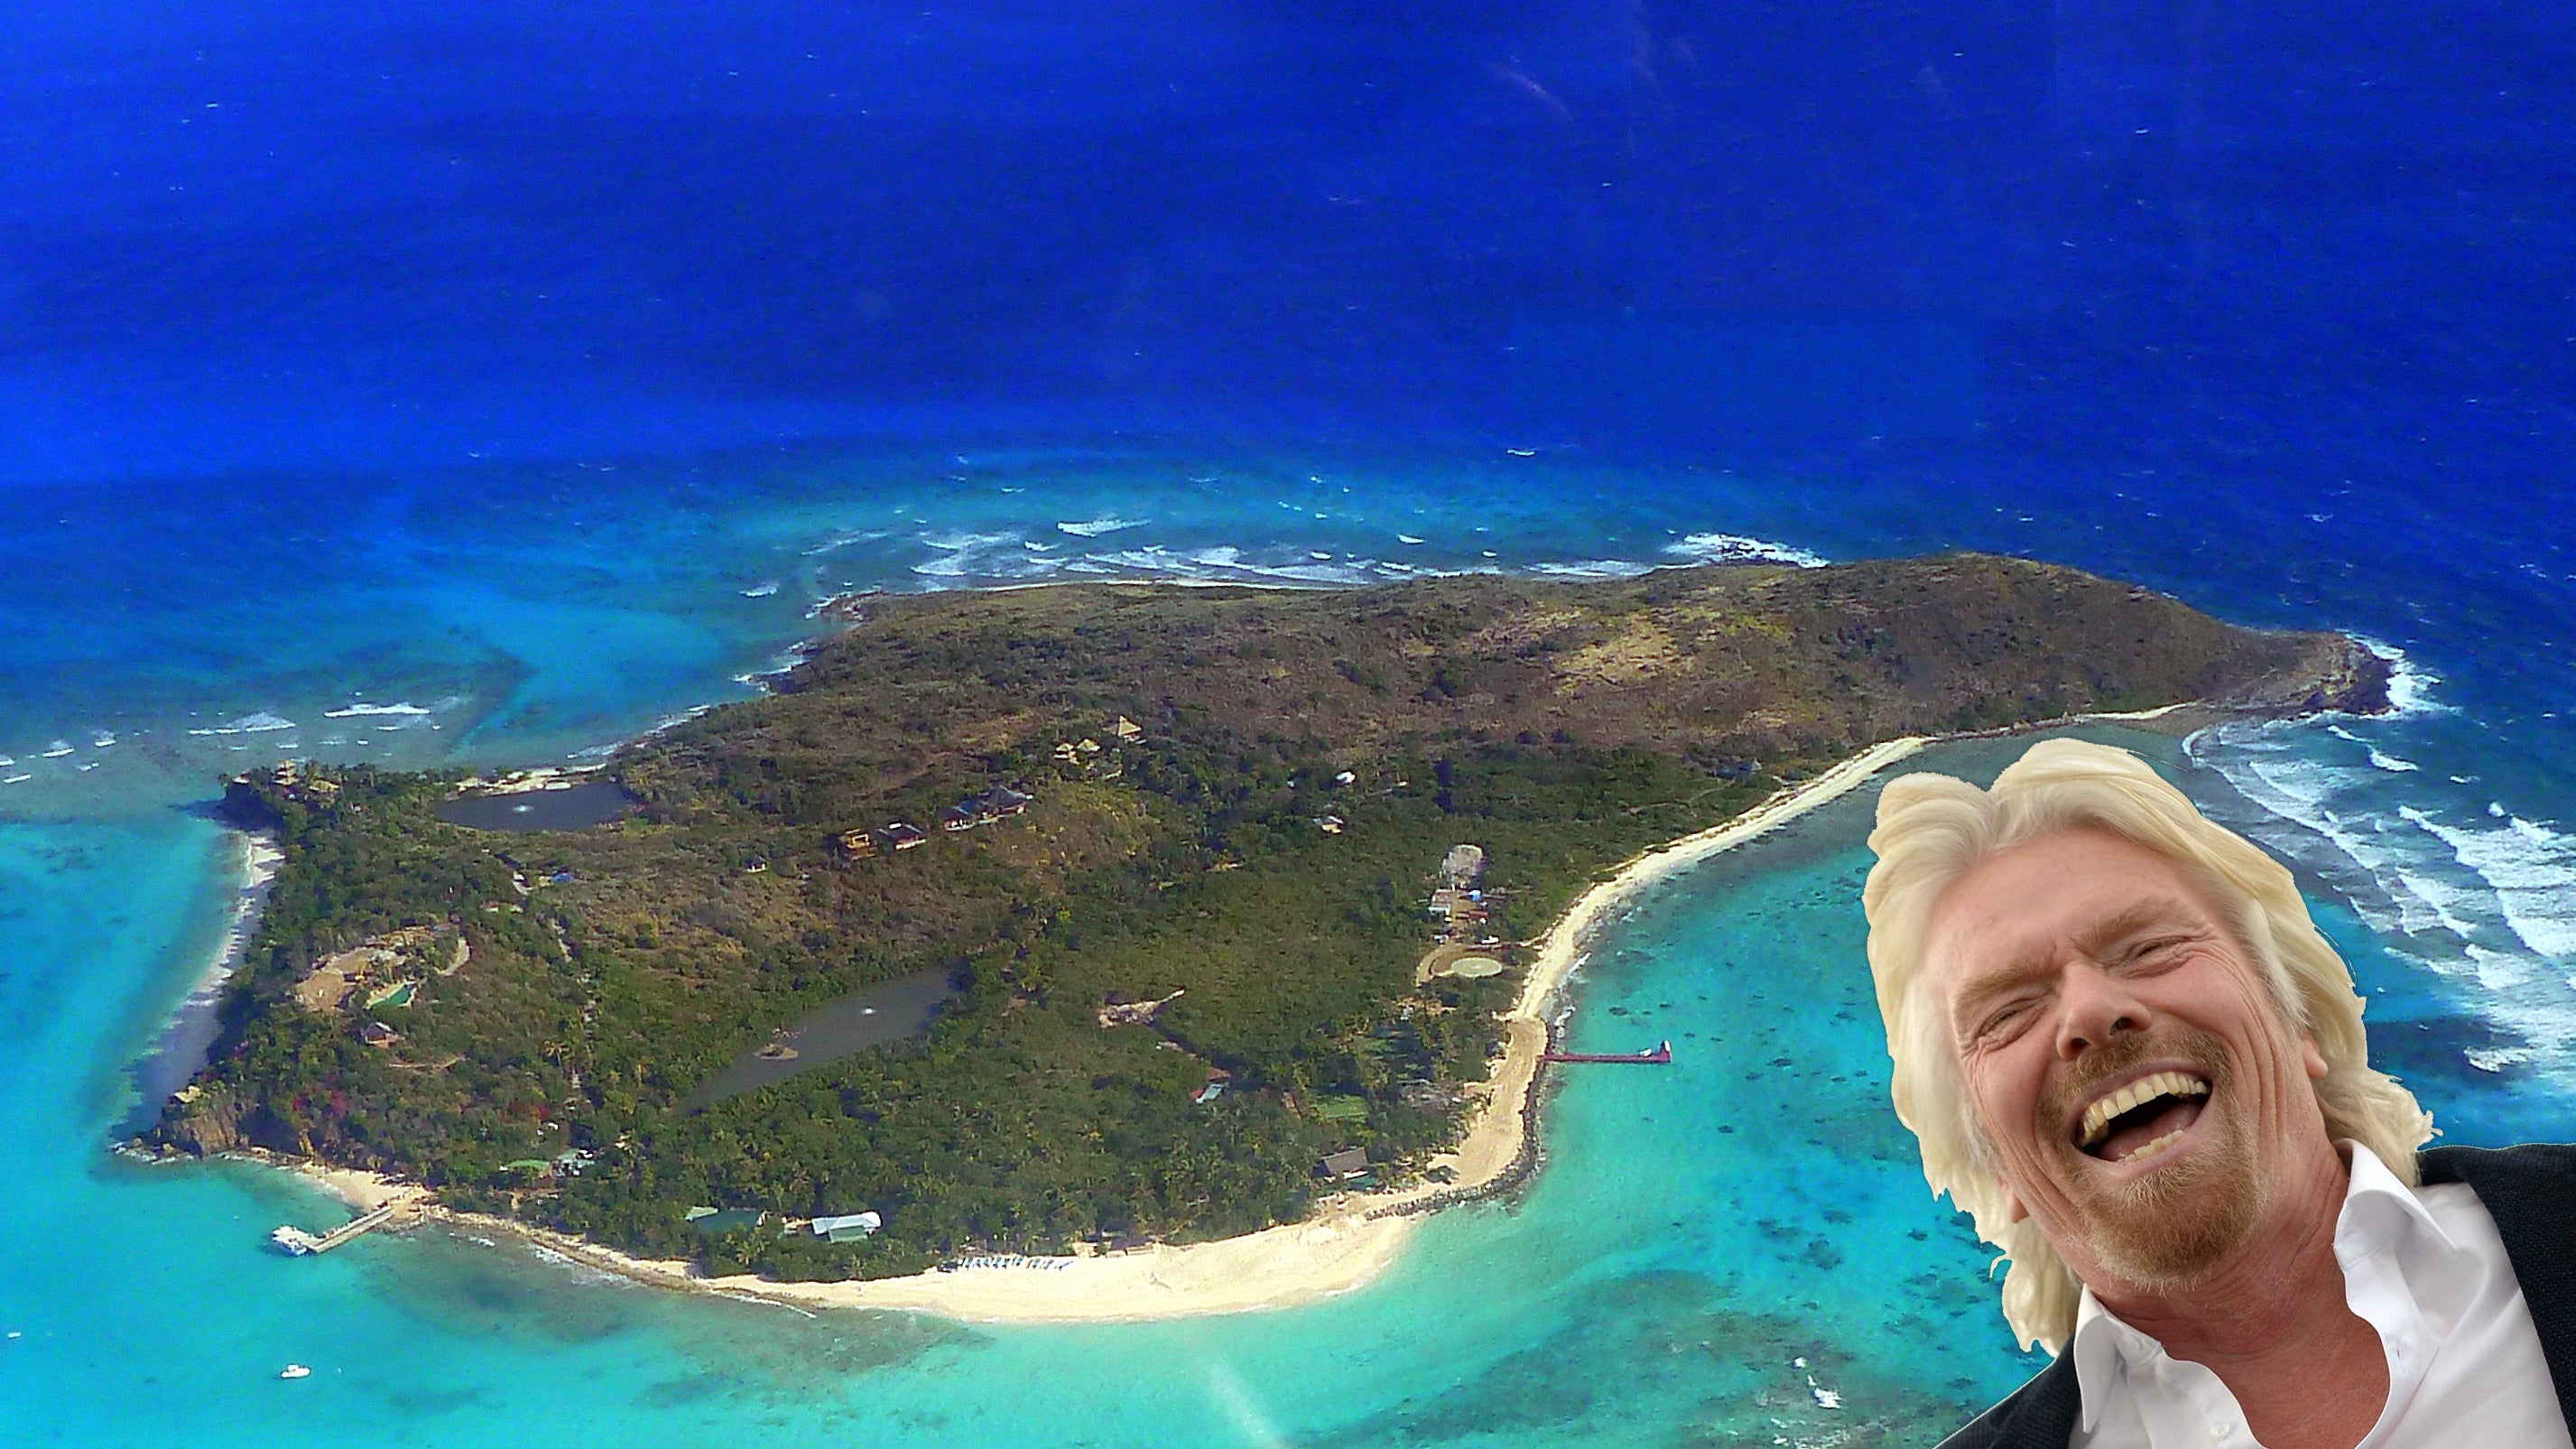 Richard Branson's Virgin Islands' home destroyed by hurricane Irma